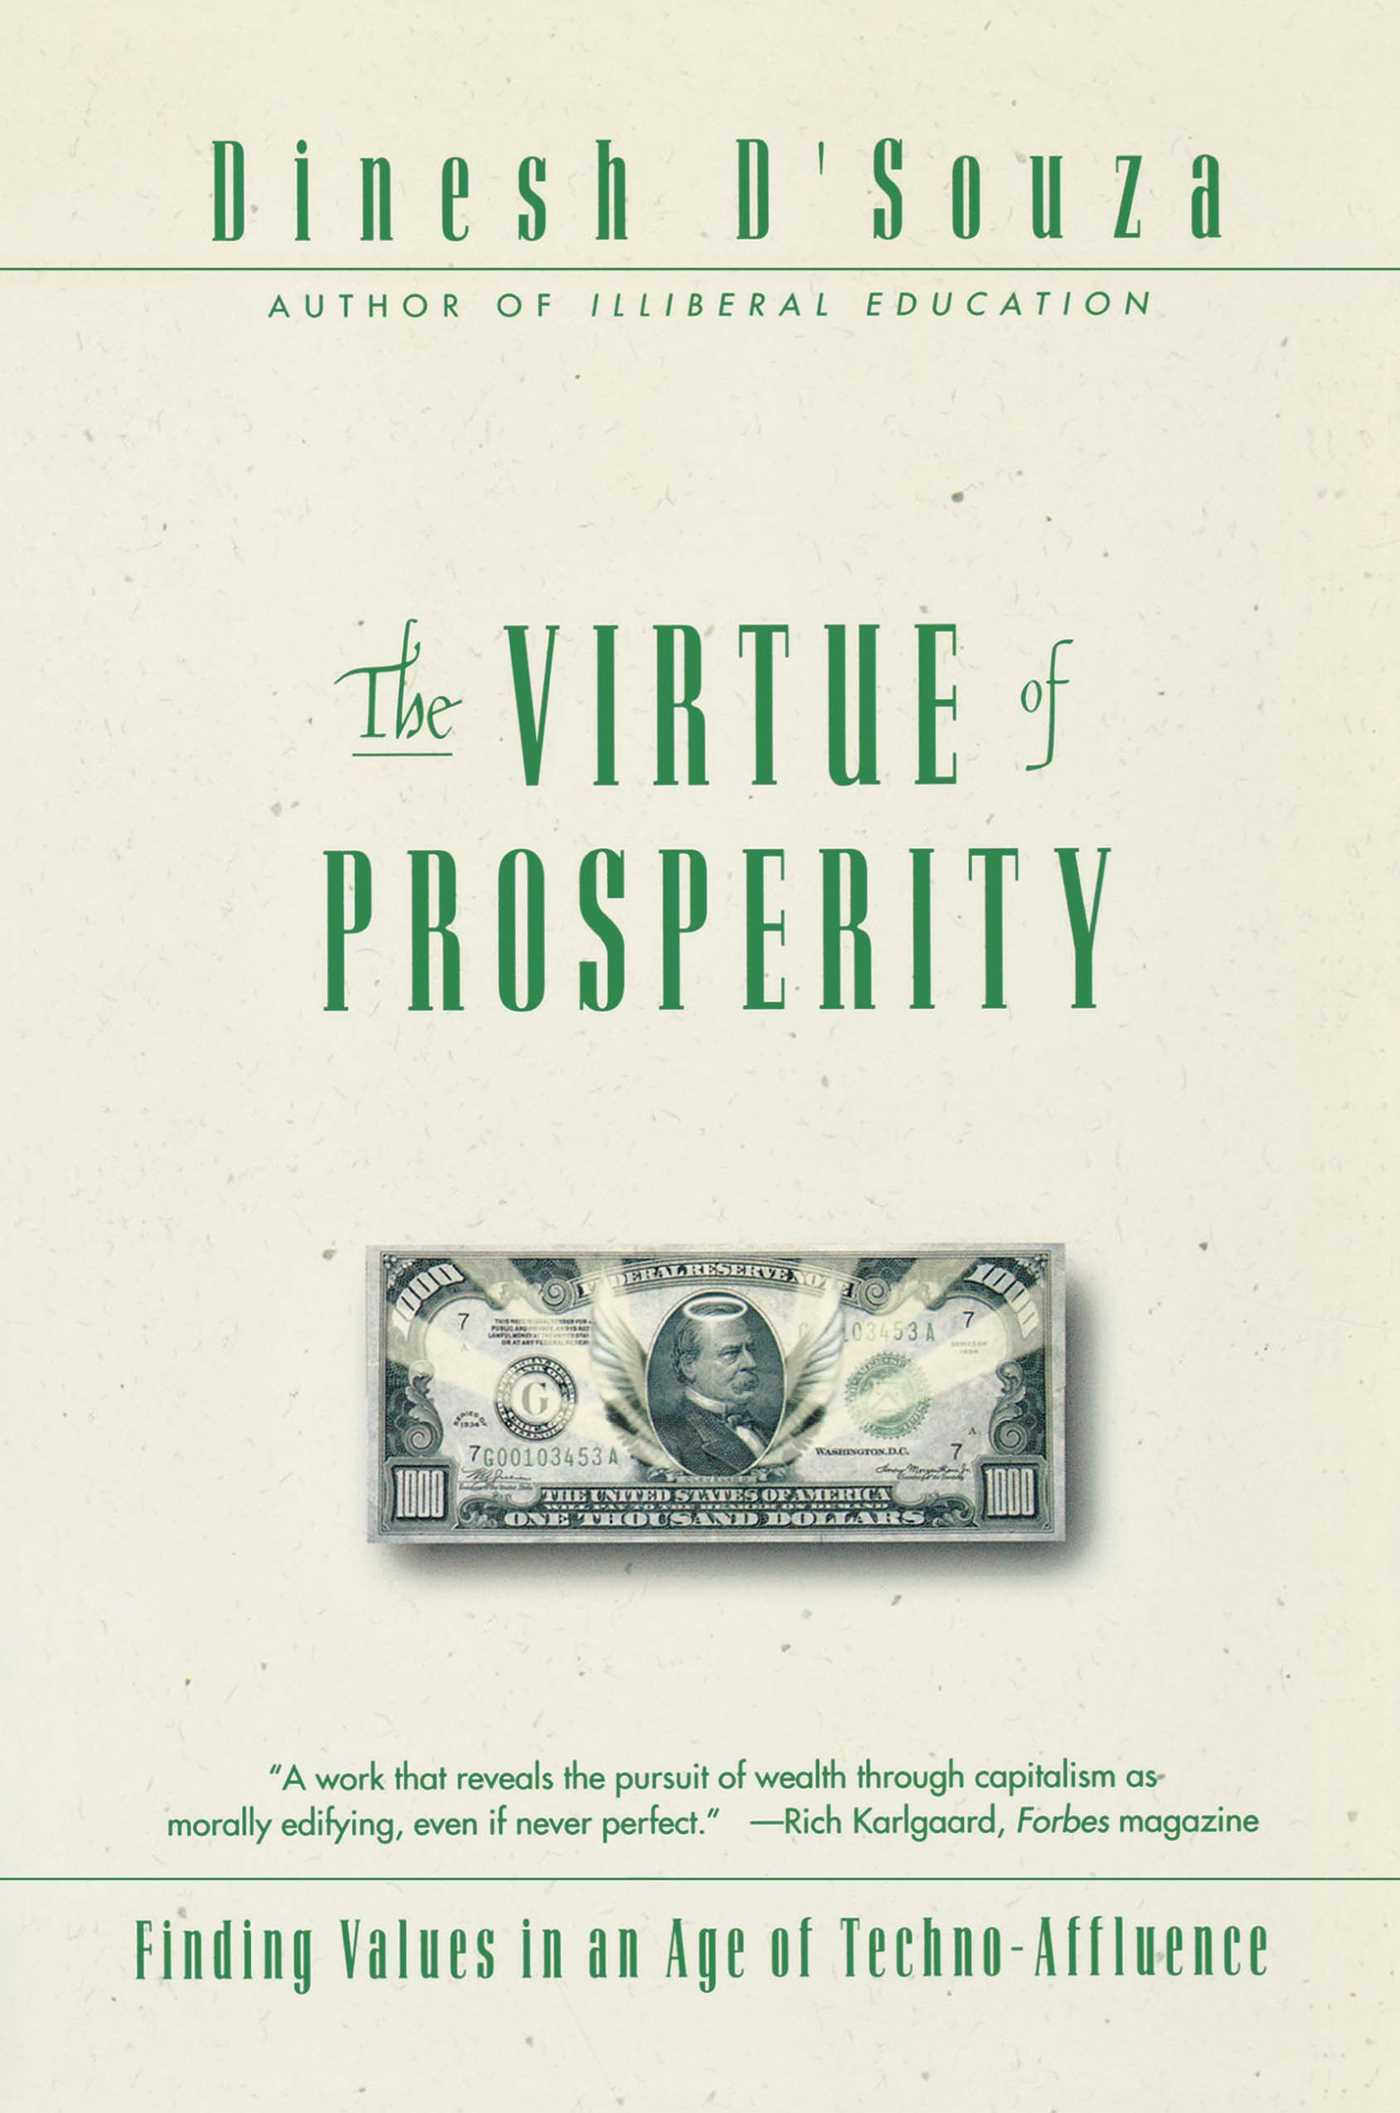 Download Ebook The Virtue Of Prosperity by Dinesh D'Souza Pdf